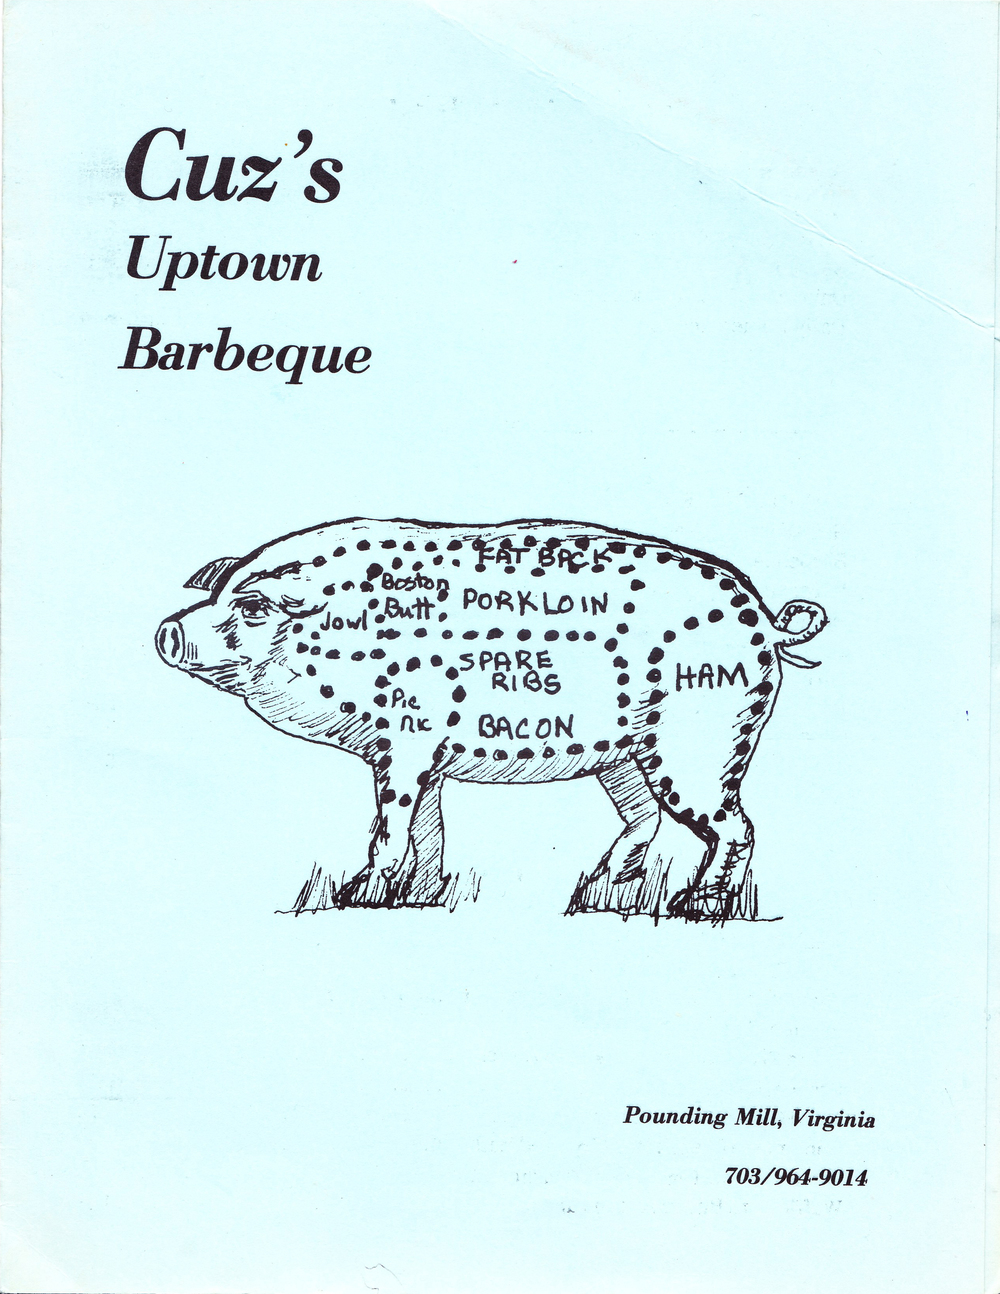 The original Cuz's menu from 1979.